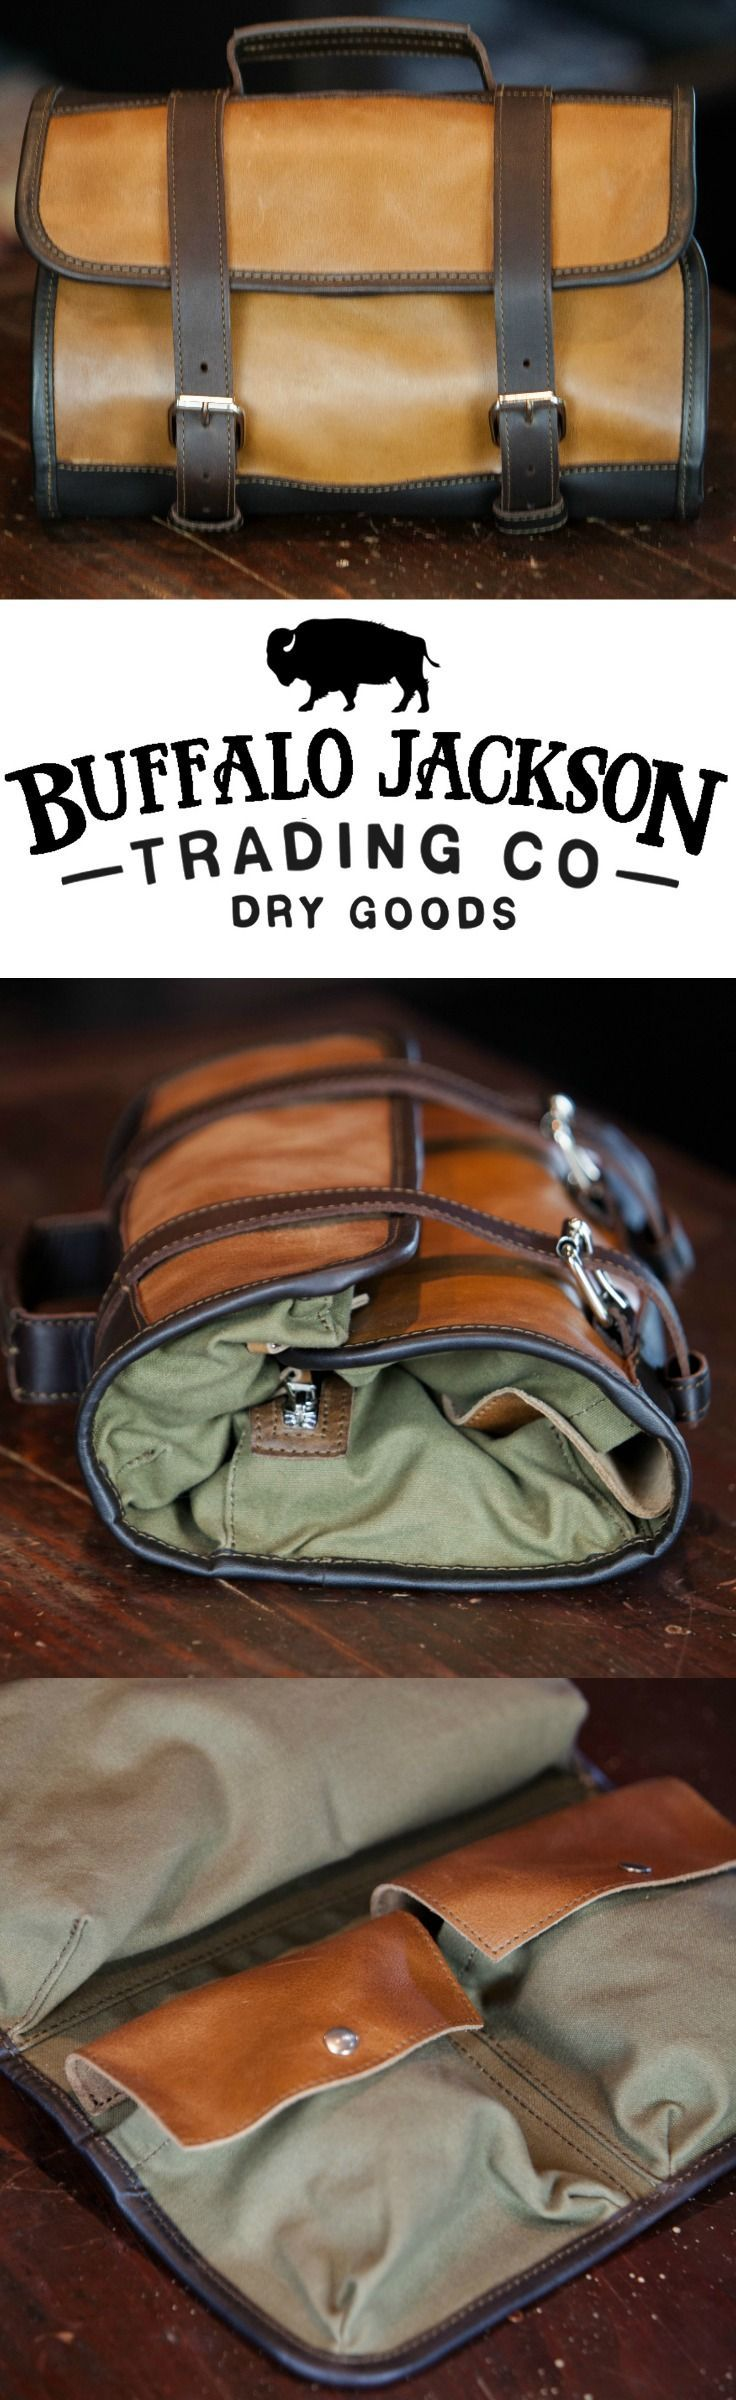 Awesome Father's Day gift - Men's Leather and Waxed Canvas Travel Kit Bag | Mens Toiletry Bag | Dopp Kit for Men | Shaving Kit Bag | Mens Travel Bag